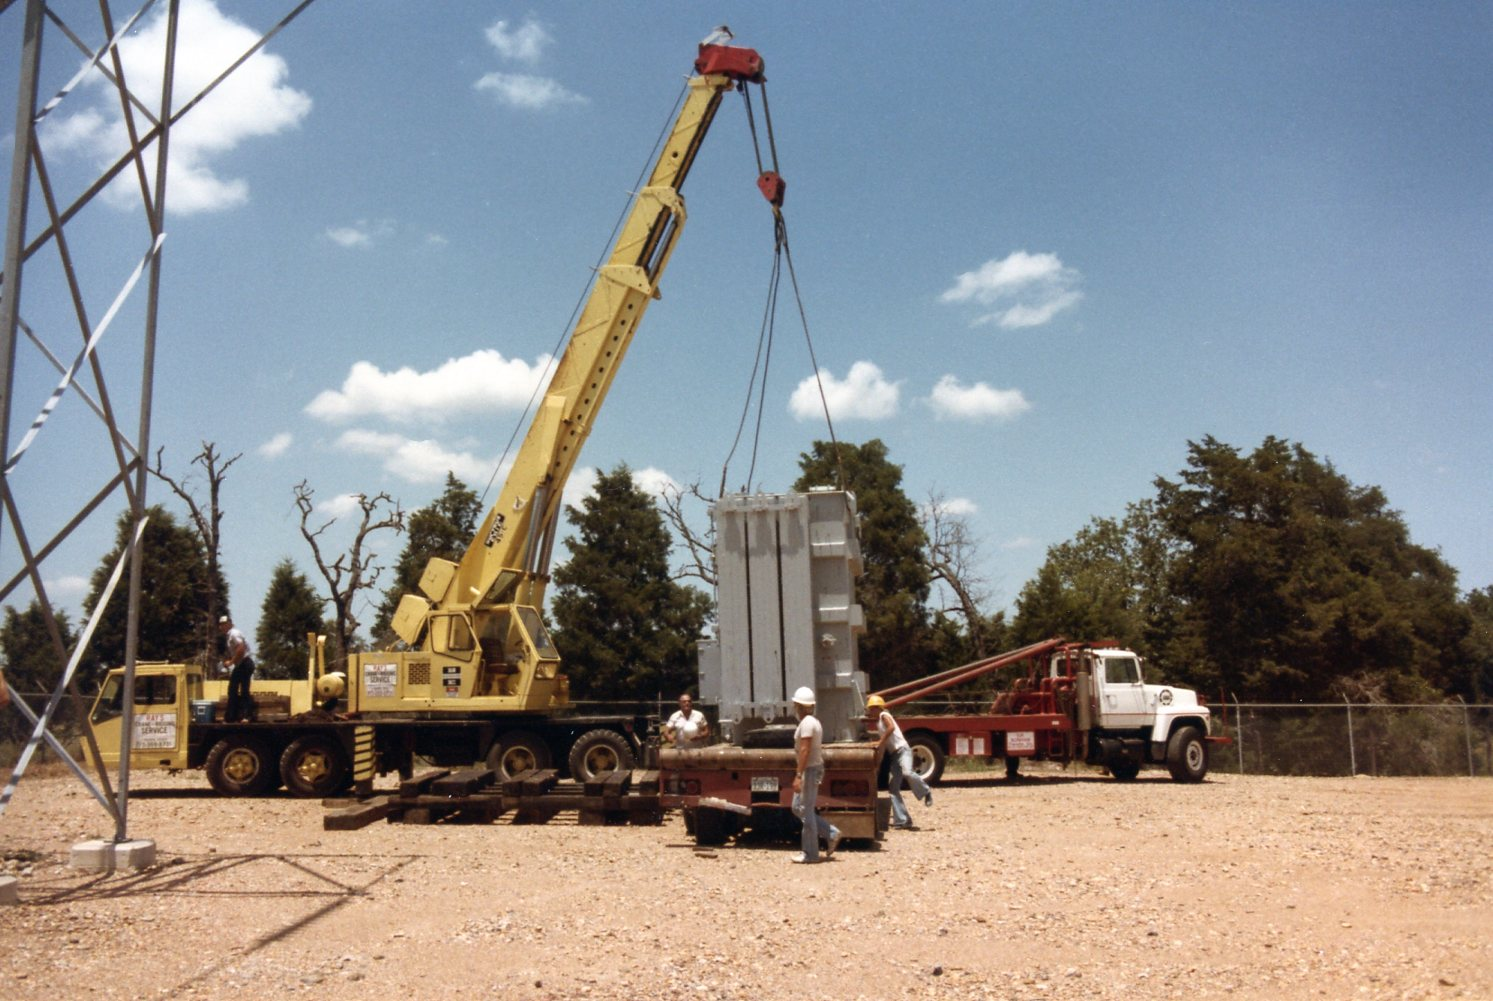 Moving transformer to Willow Springs